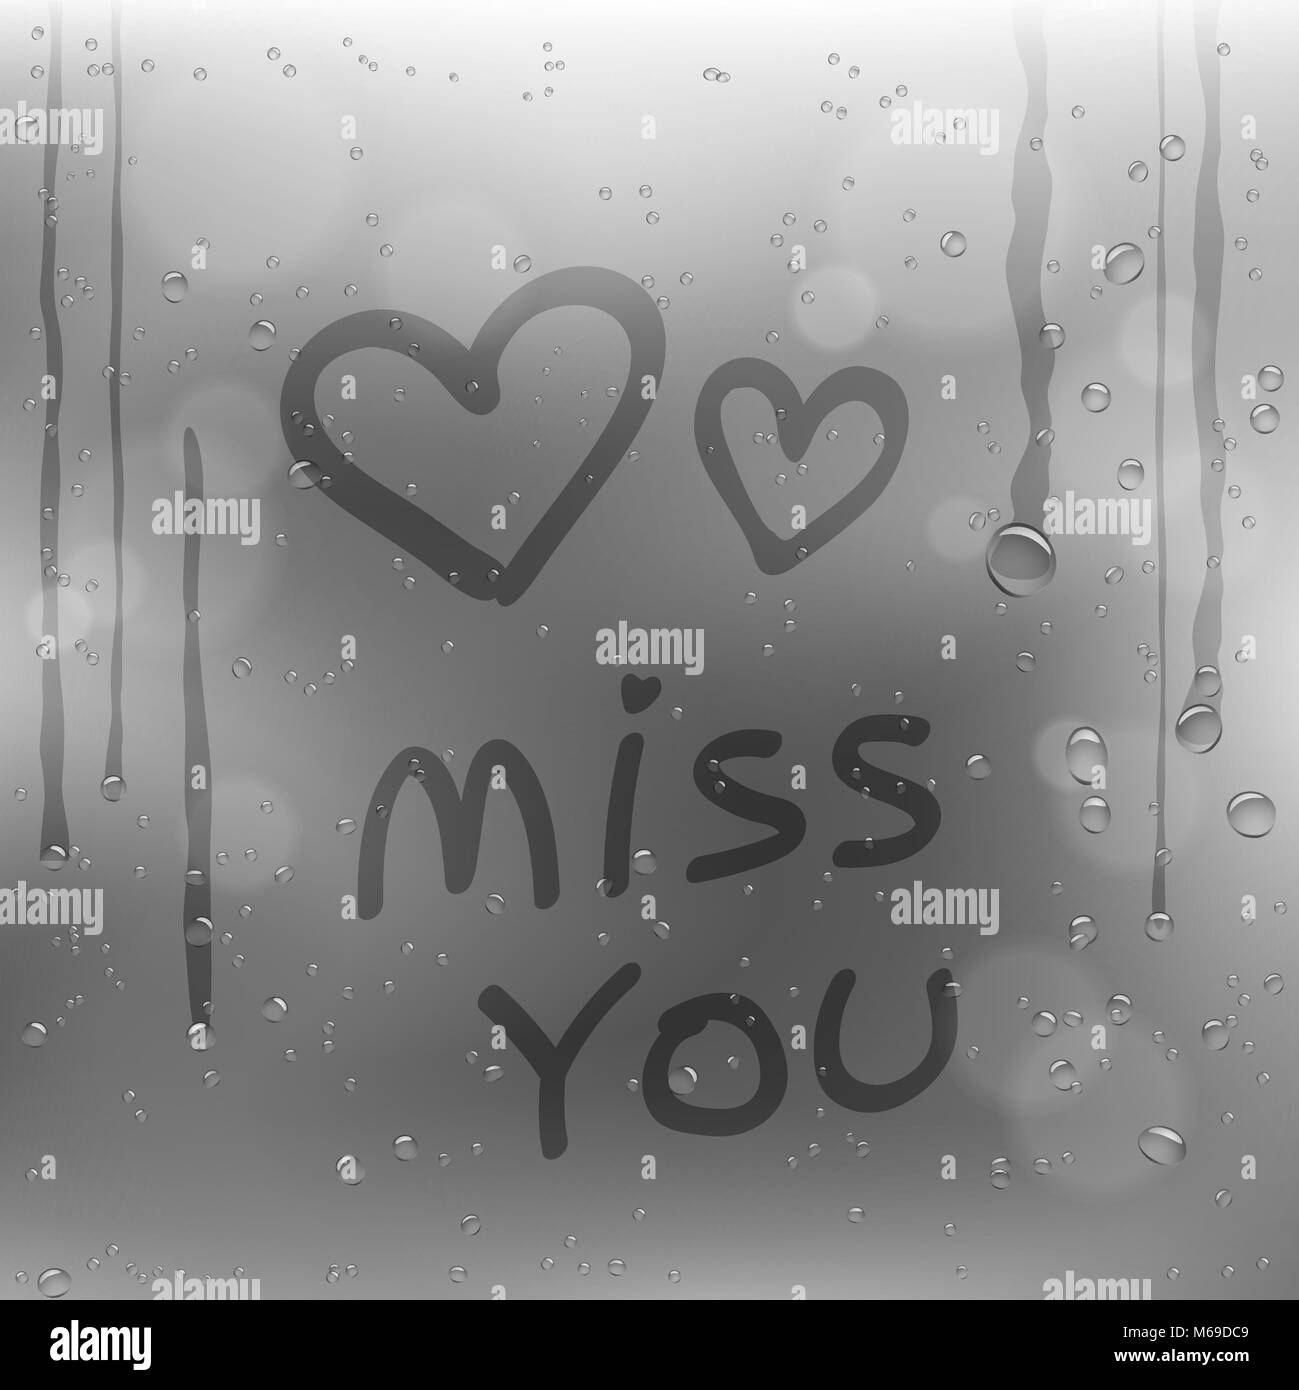 Text miss you and hearts symbol draw on rainy window. Sadness romantic rain template on glass surface with gray - Stock Image